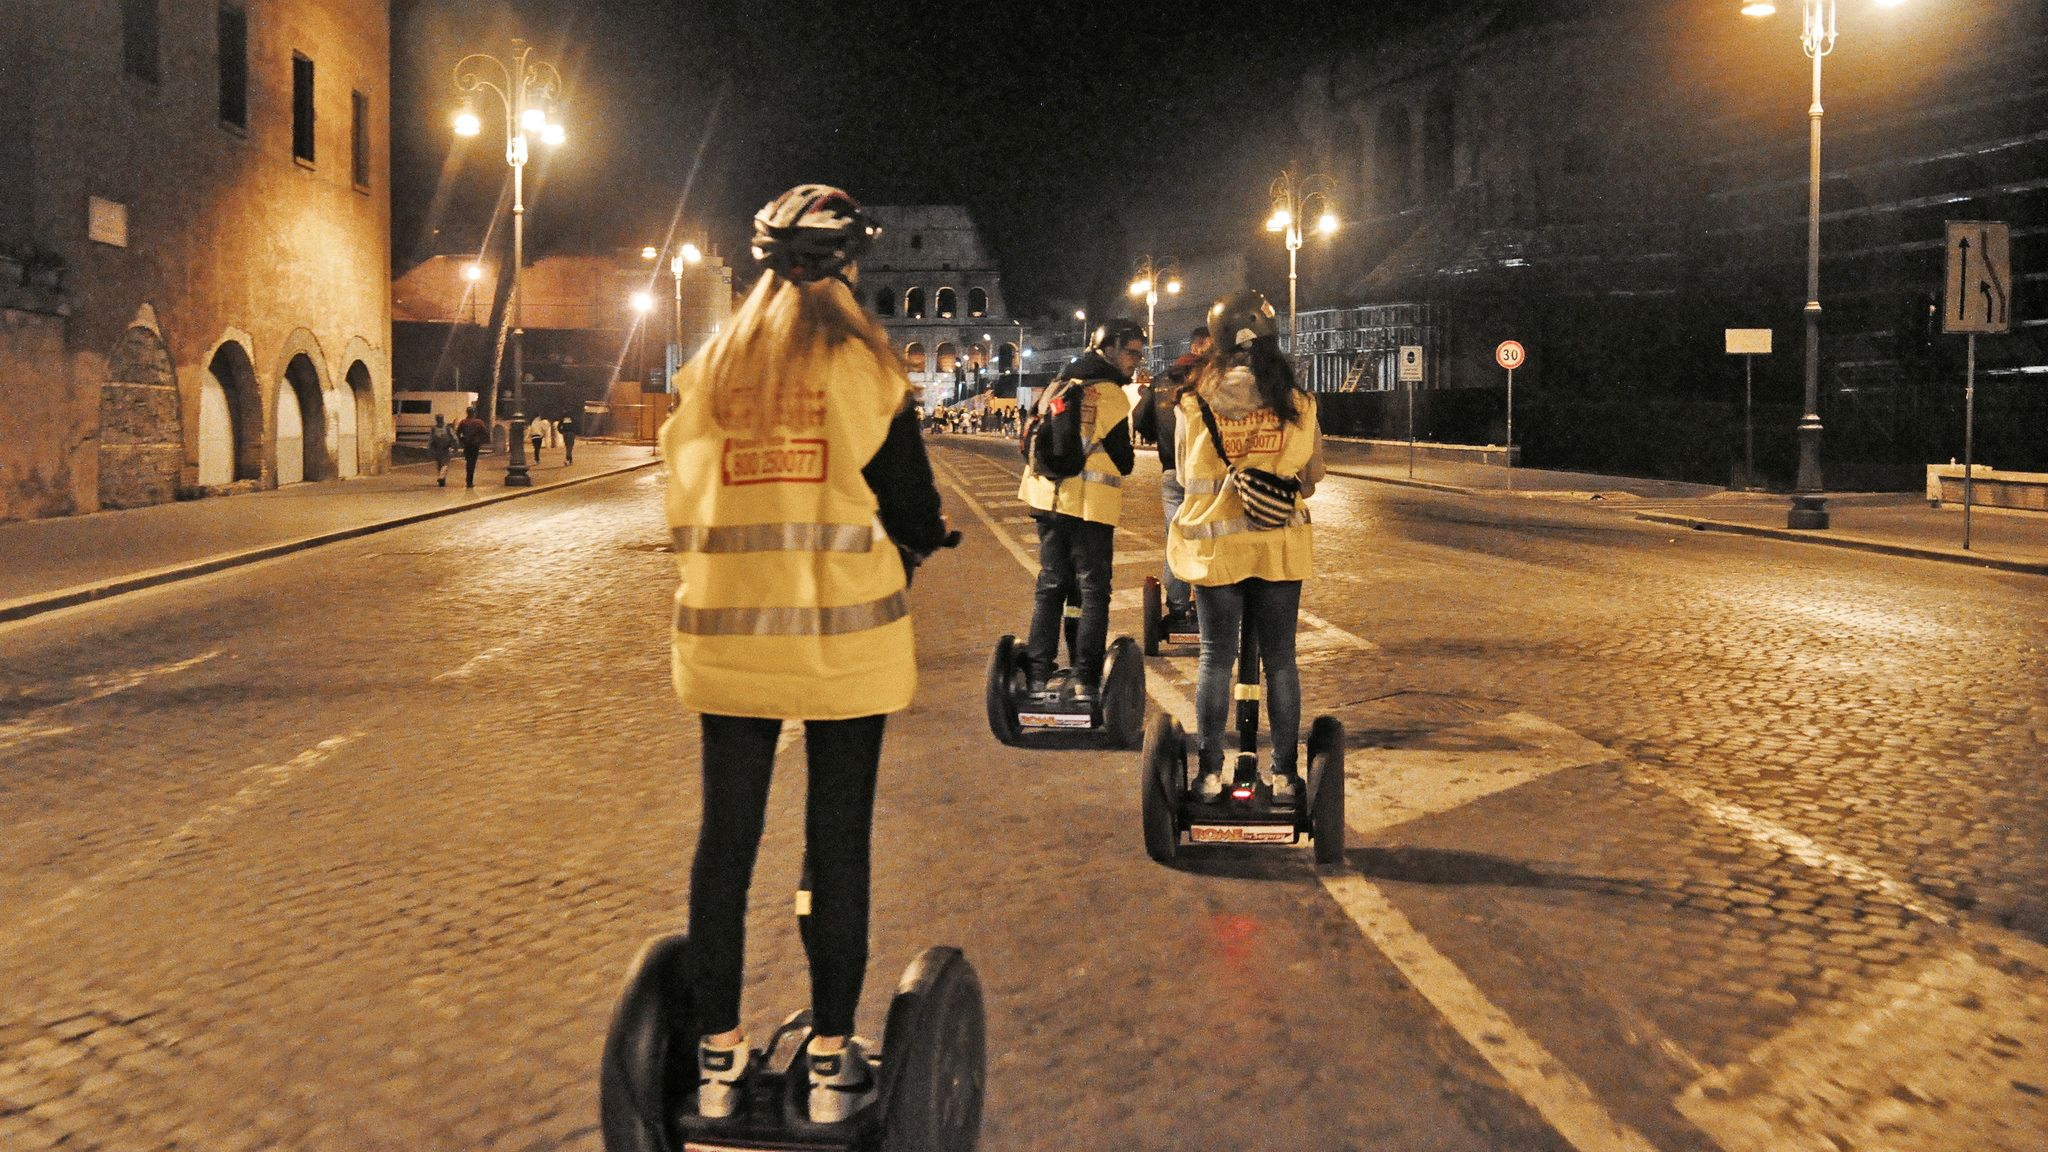 segway riders in rome